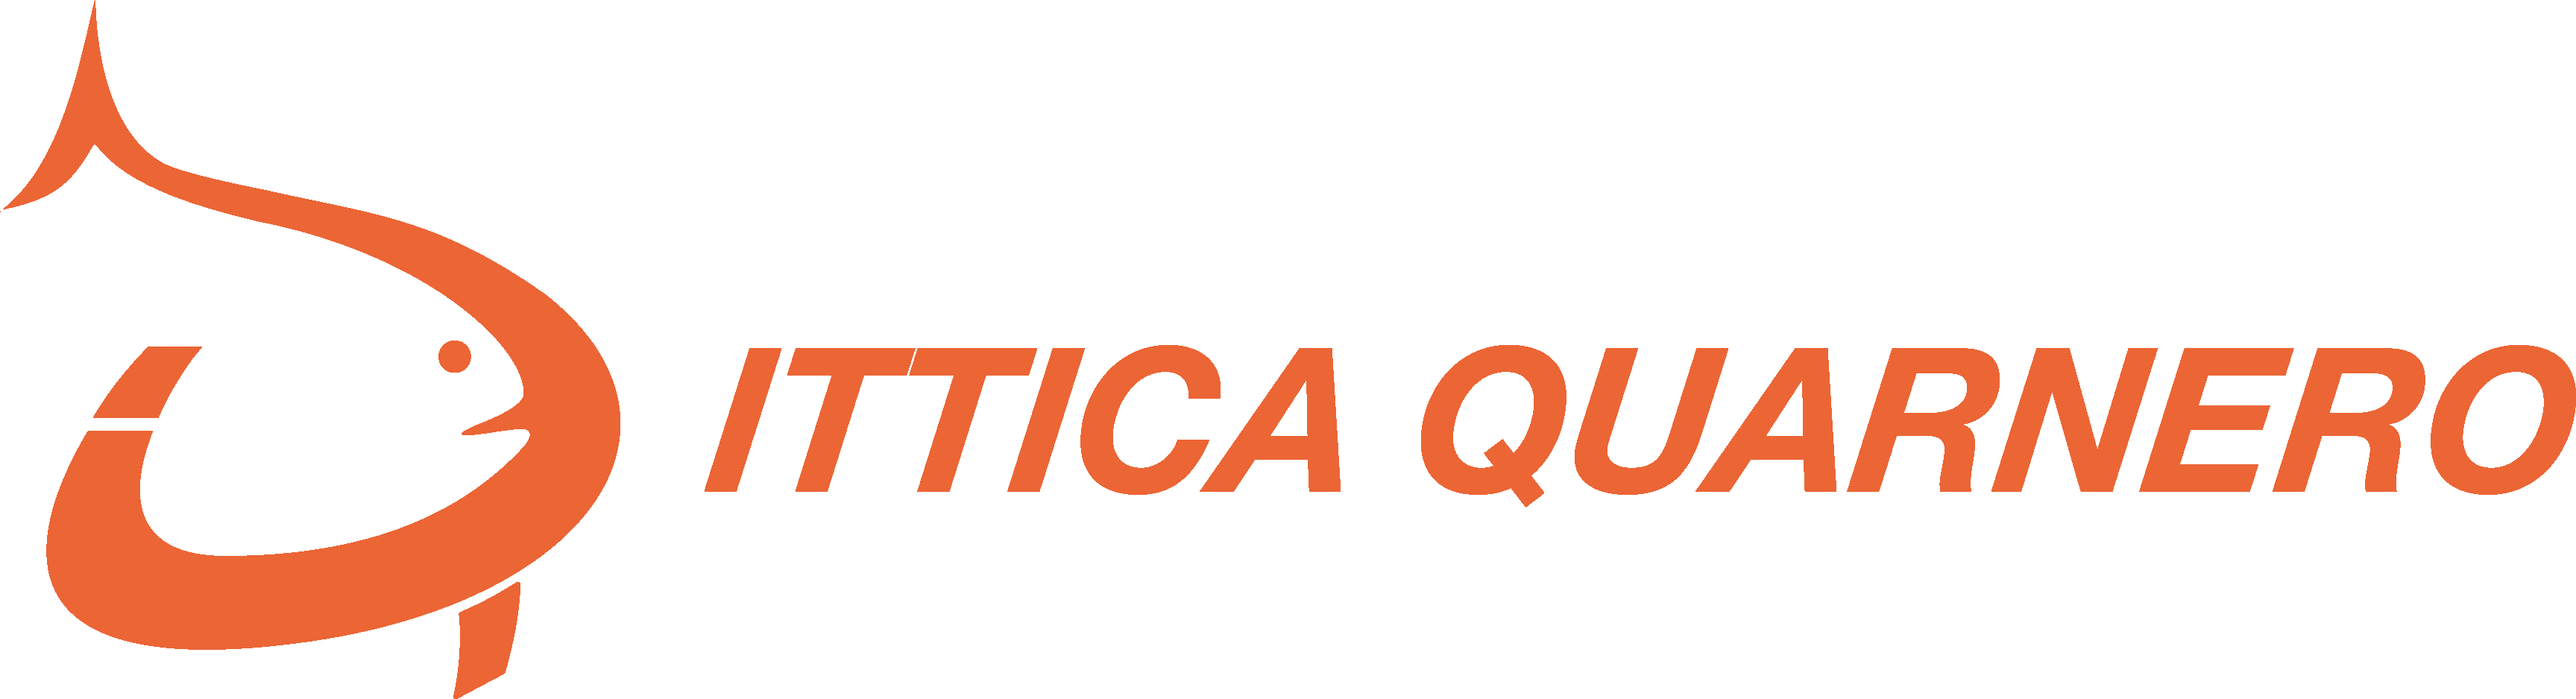 ITTICA QUARNERO